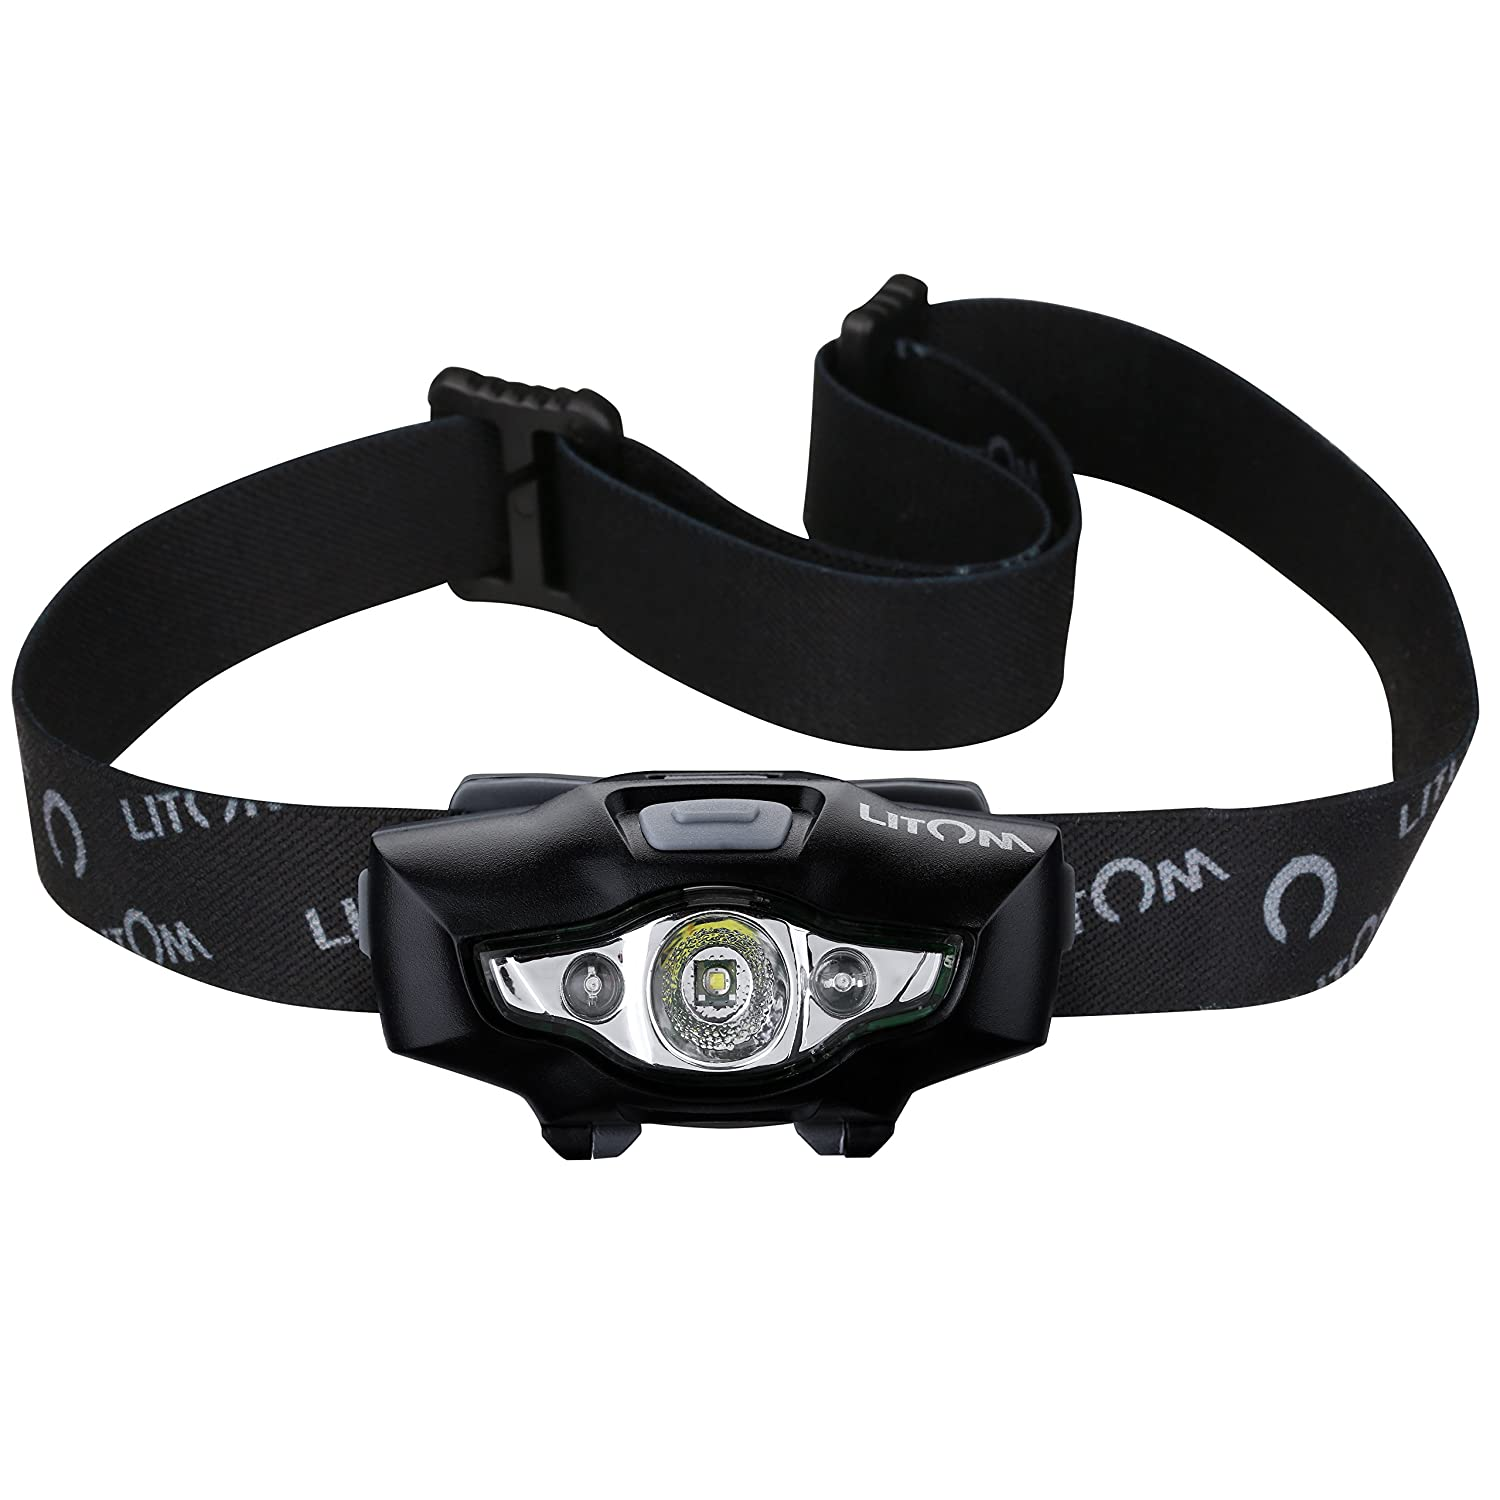 Litom Lhl2 Headlamp Flashlight With White Red Led Battery